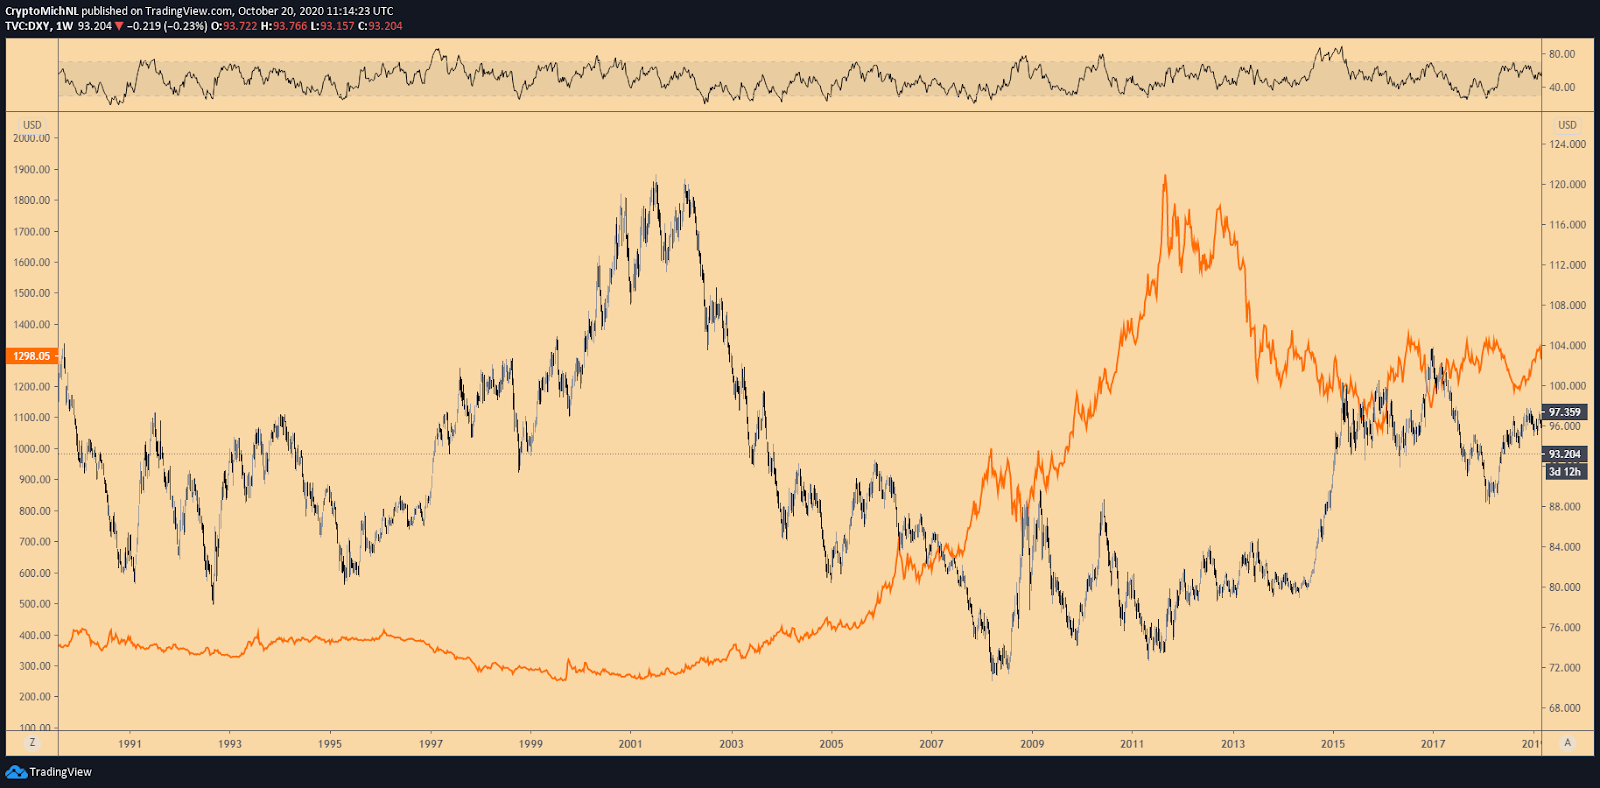 Gold vs. DXY Index 1-week chart